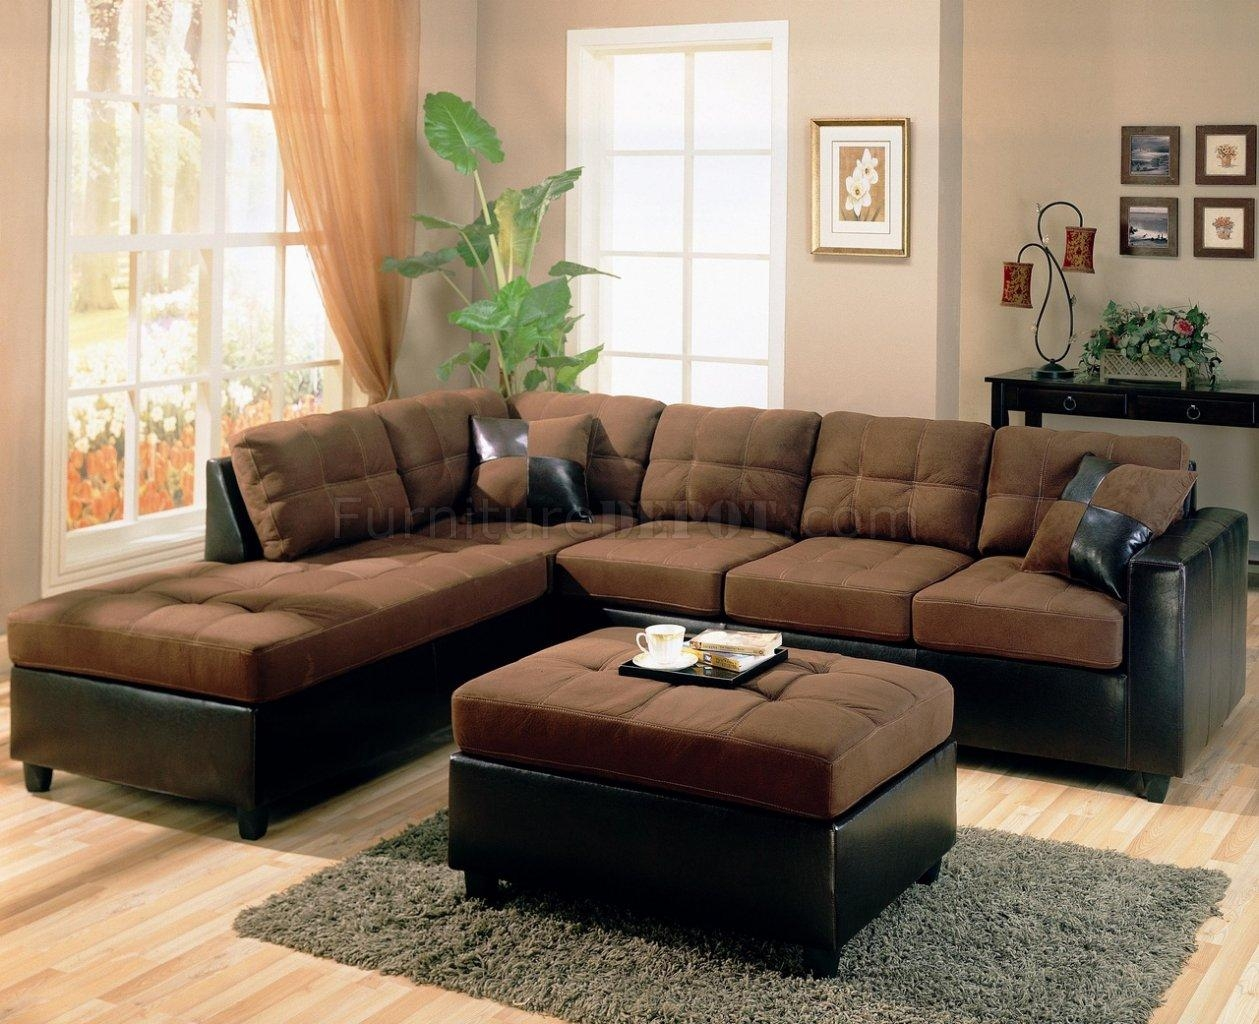 Featured Image of Chocolate Brown Sectional Sofa